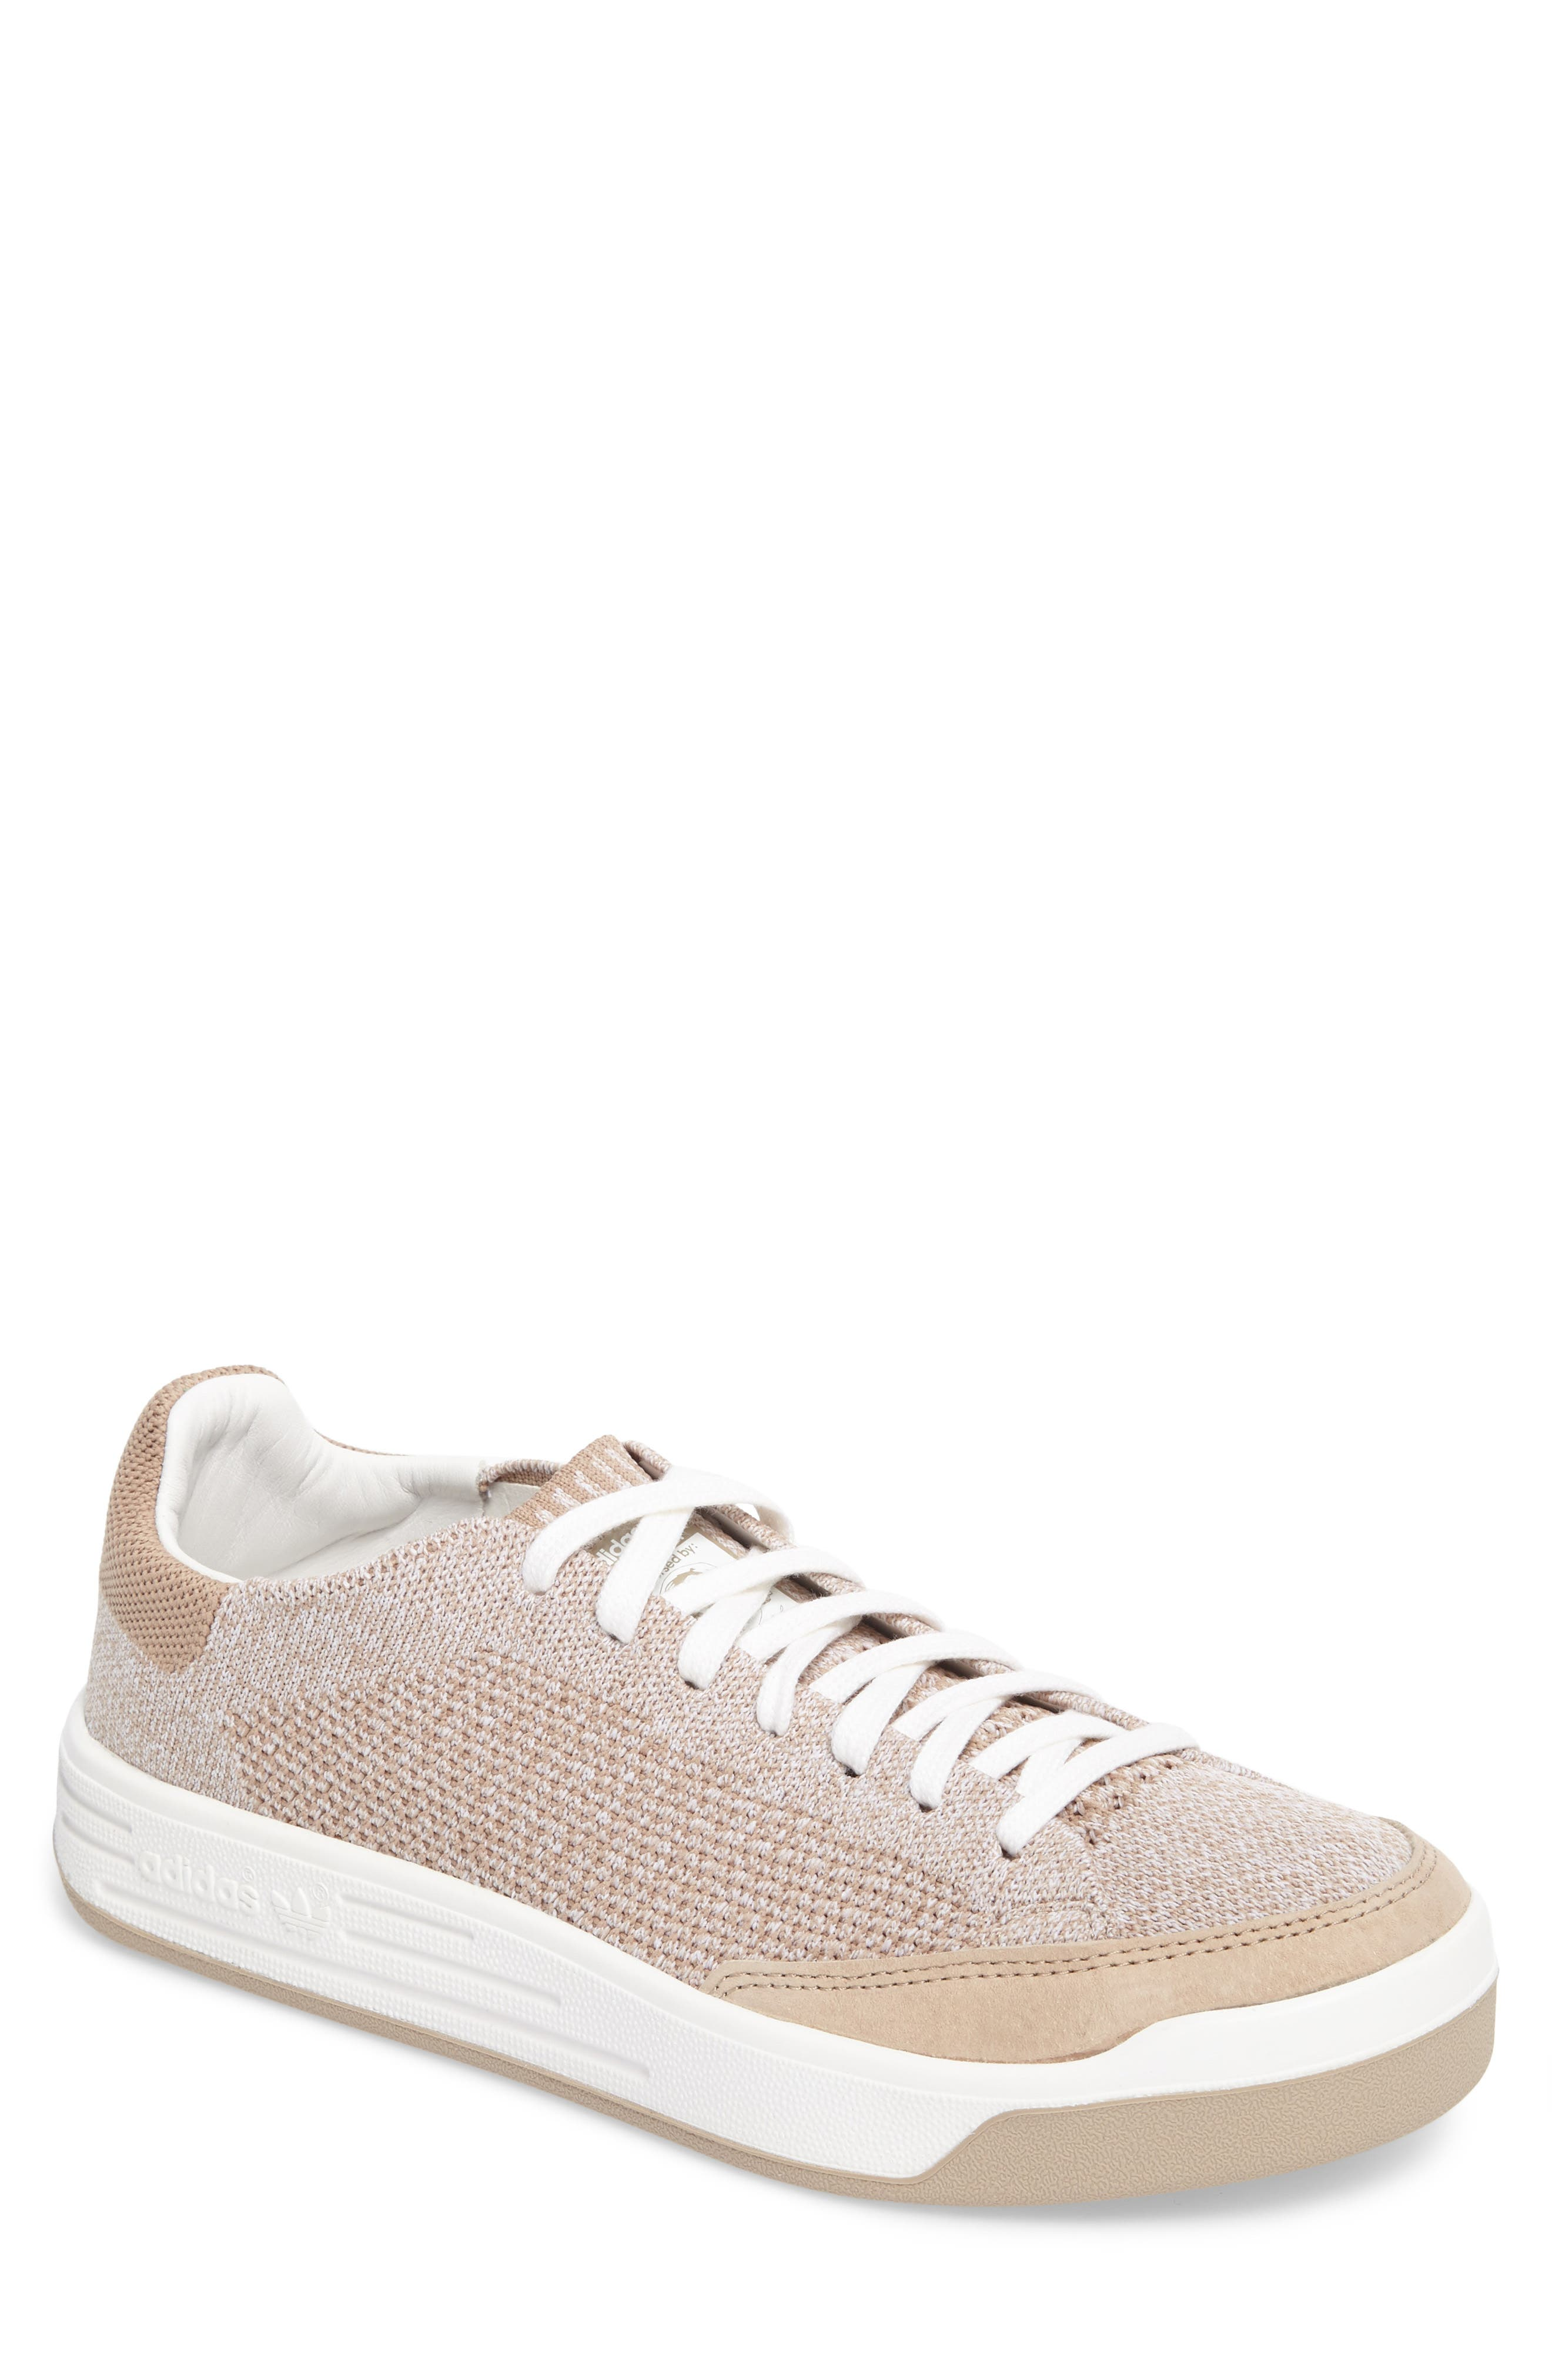 Rod Laver Super Primeknit Sneaker,                             Main thumbnail 1, color,                             Khaki/ White/ Crystal White